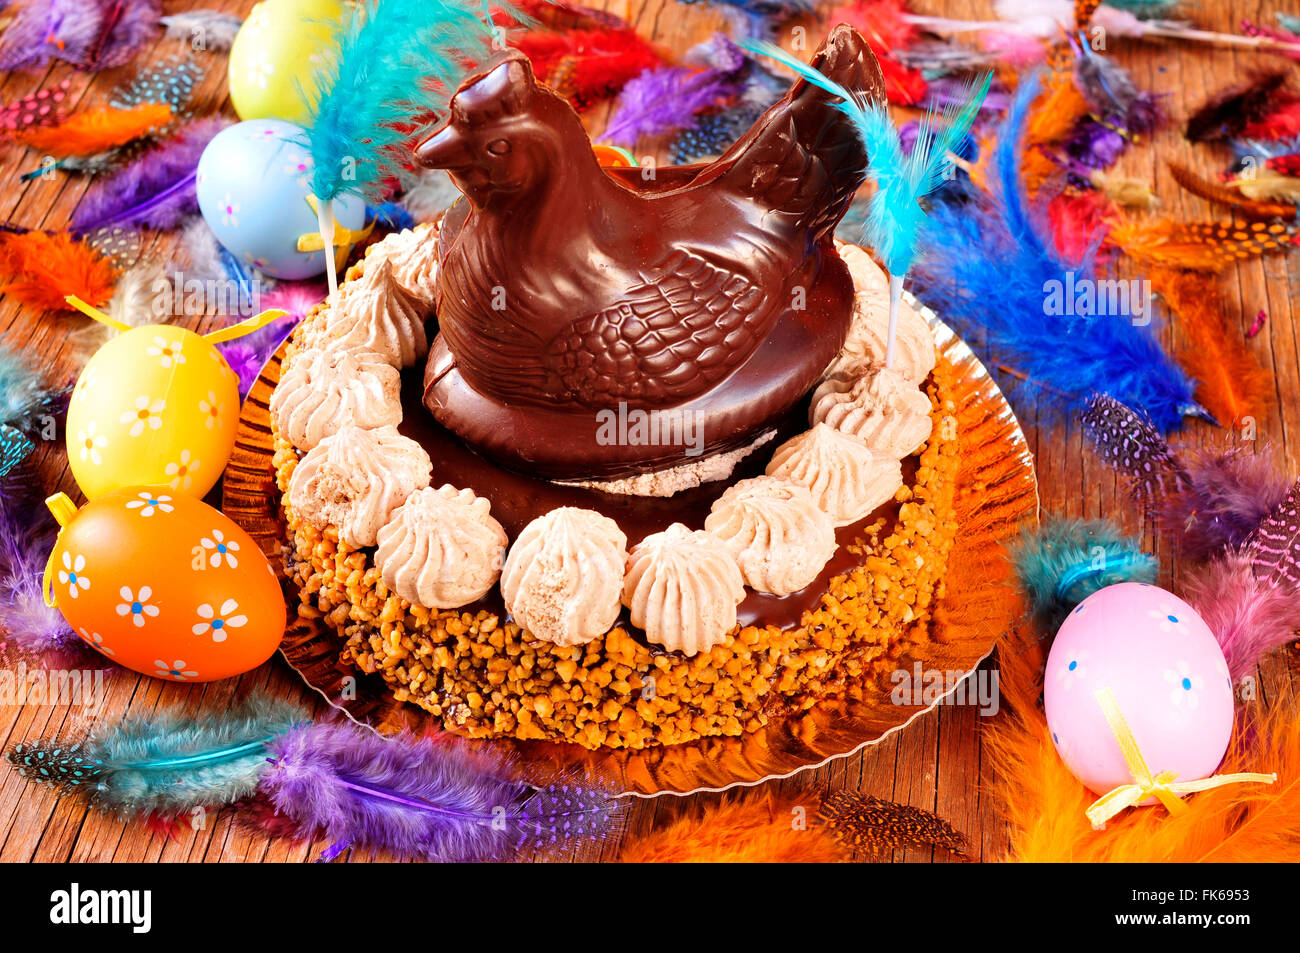 a mona de pascua, a cake eaten in Spain on Easter Monday, topped with a chocolate chicken, on a rustic wooden surface Stock Photo